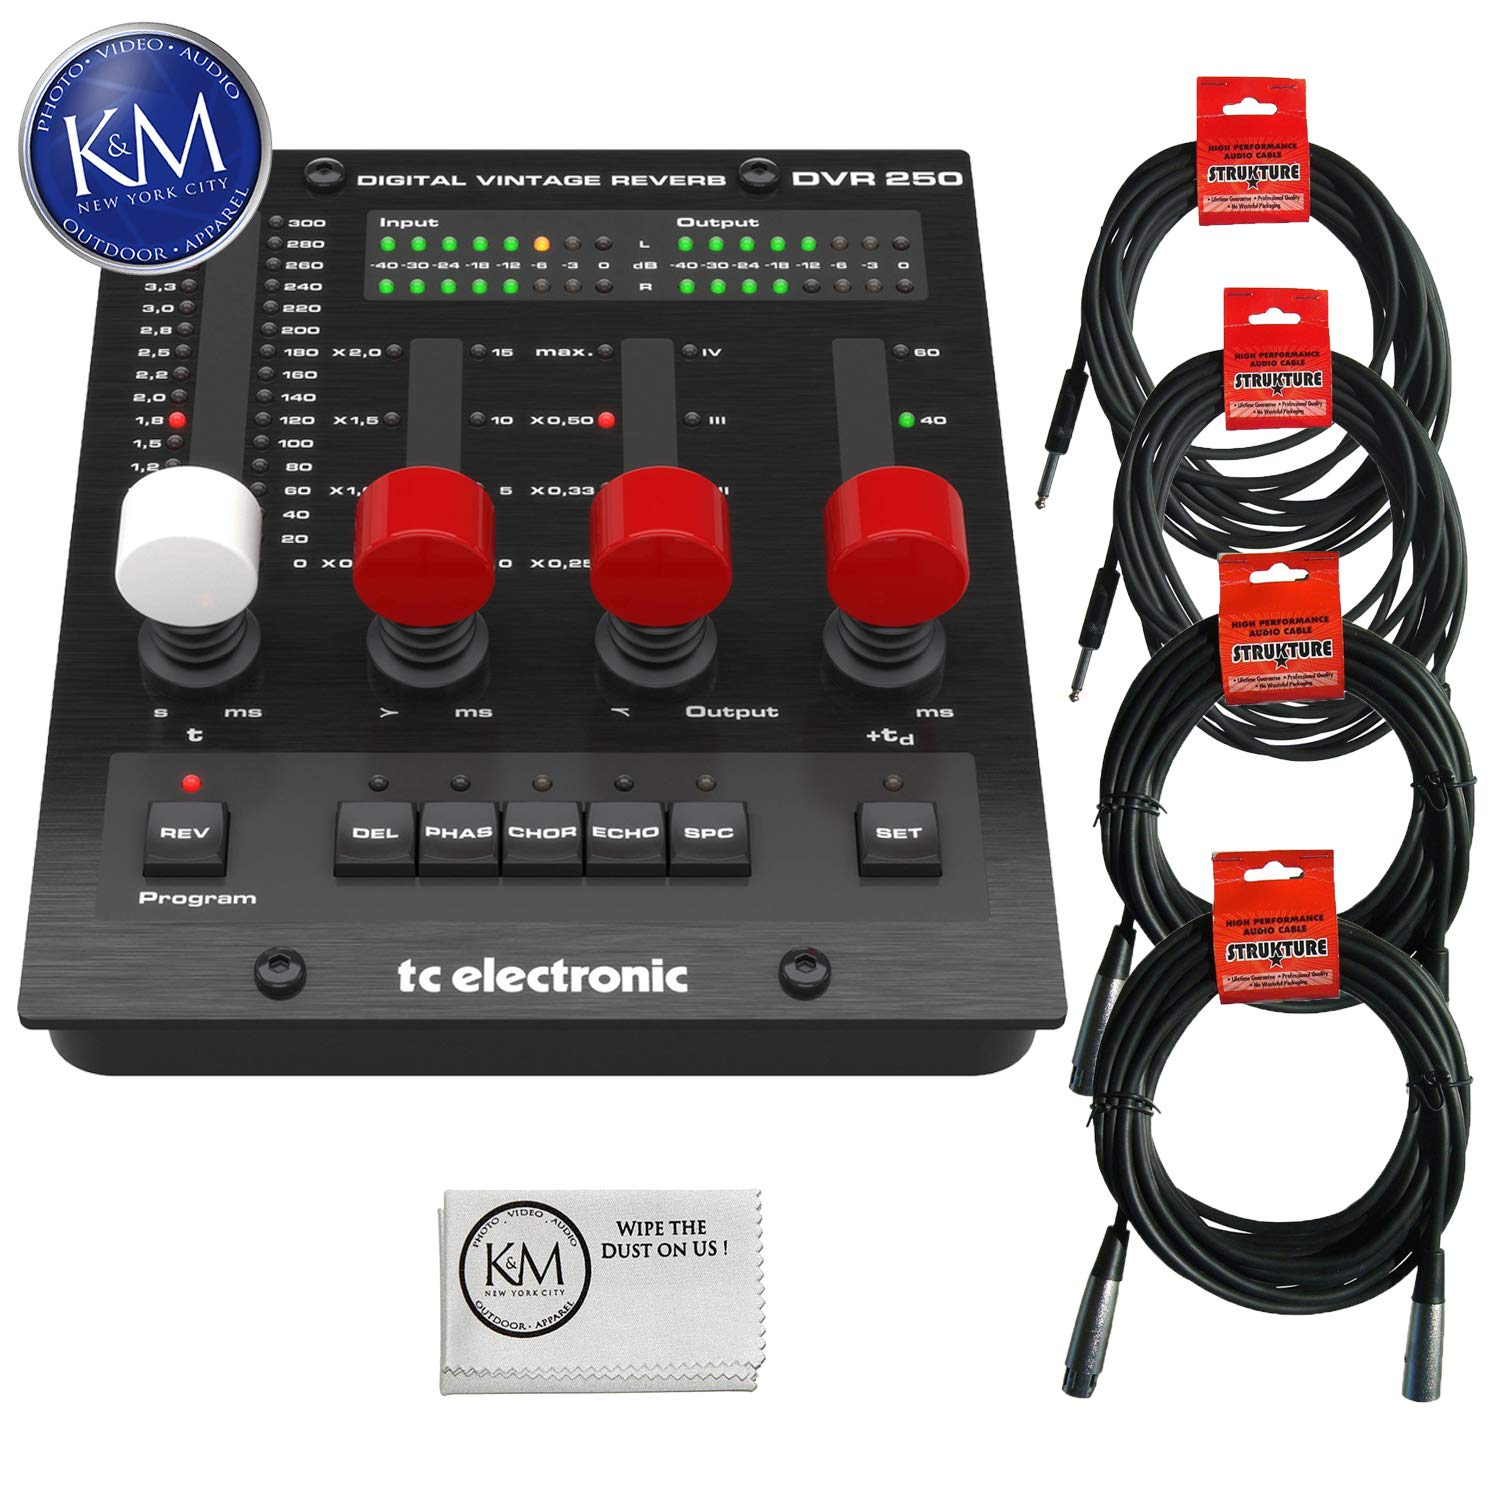 TC Electronic DVR250-DT Digital Vintage Reverb Effects Processor (Hardware Controller & Software) + (2) Instrument Cables + (2) XLR Cables + K&M Cloth Bundle